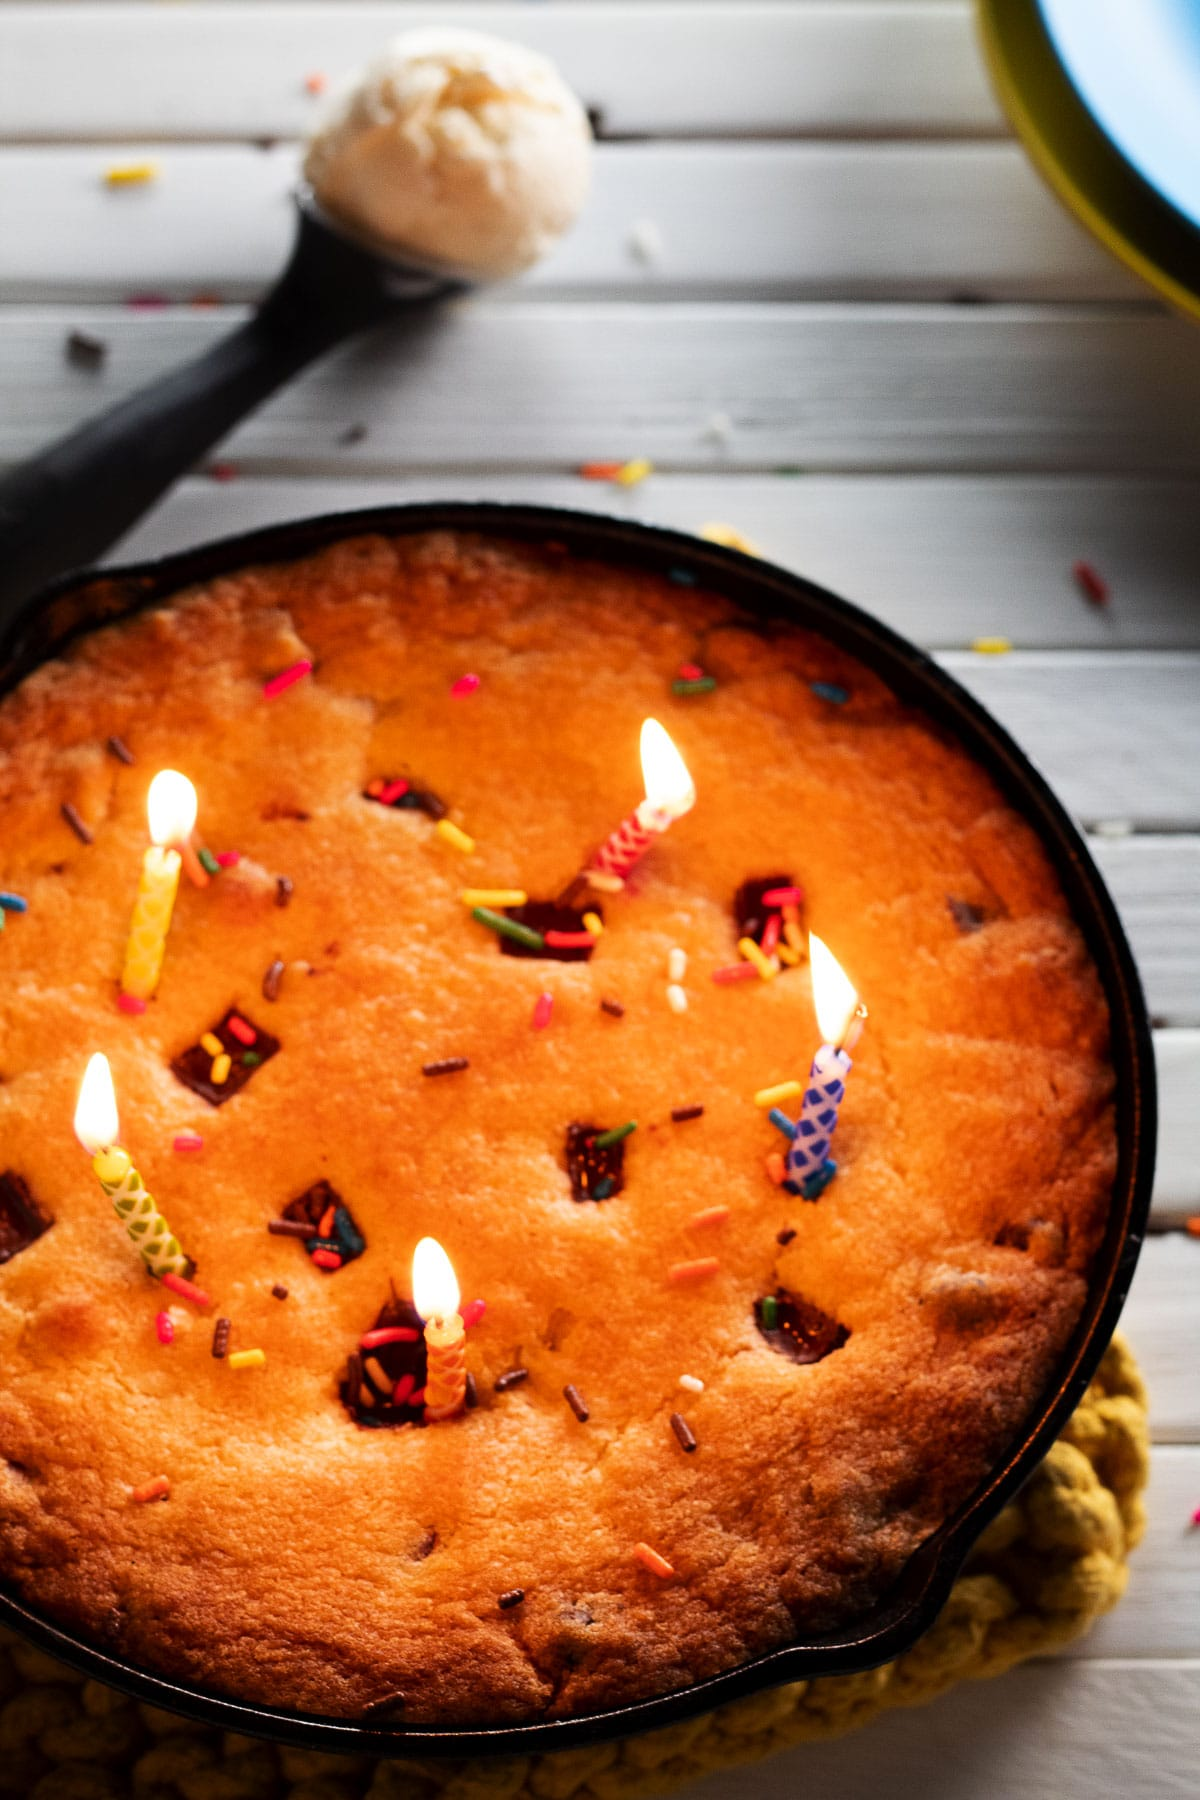 Up close birthday hot cookie dough with lit candles.